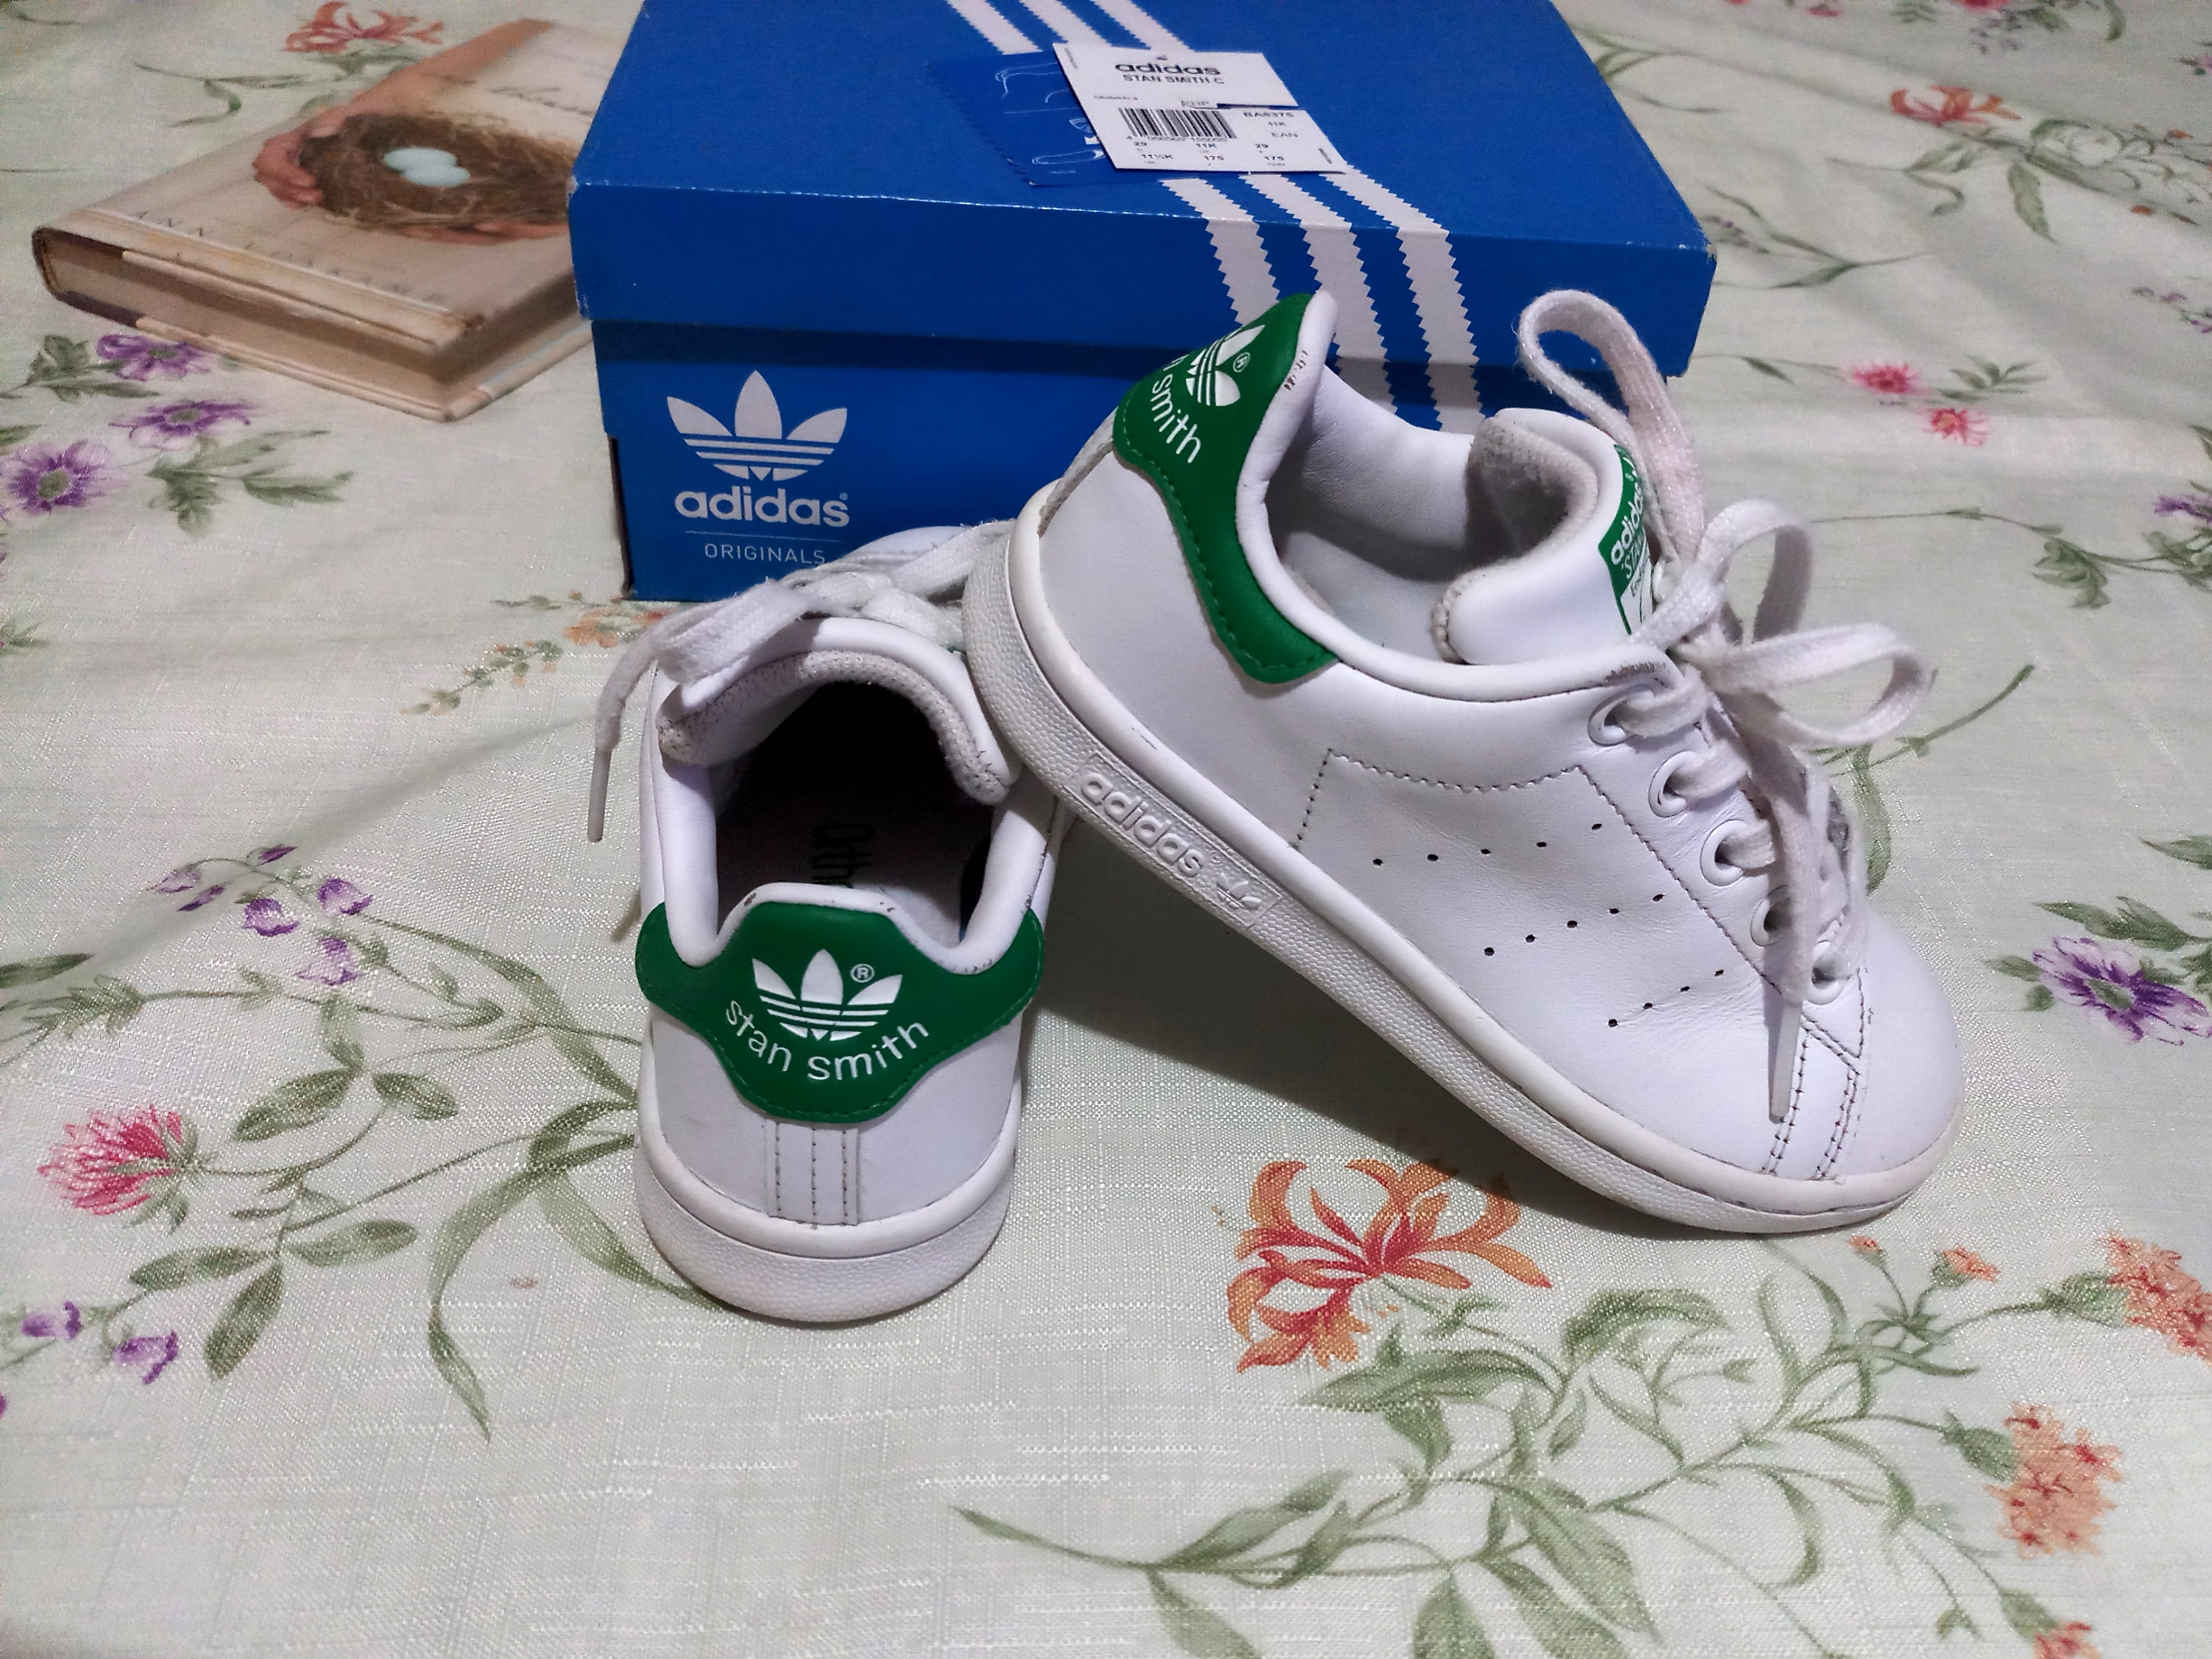 ADIDAS Stan Smith C  FOR KIDS  101% Authentic   Size US 11.5K  3-6yrs. Old 94e16d644